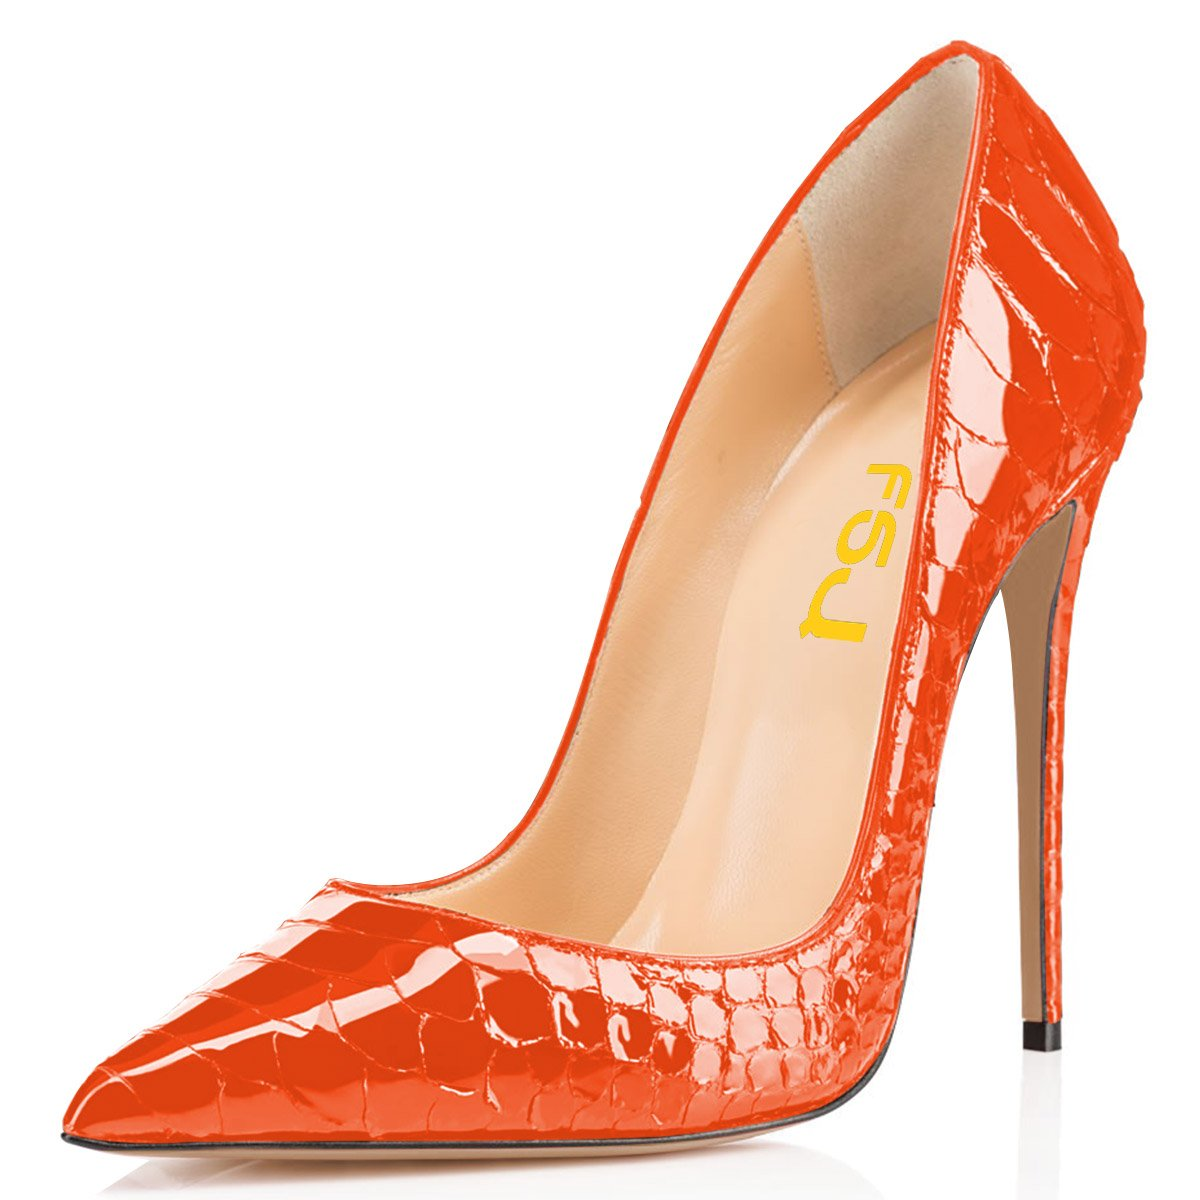 orange Snake FSJ Formal Pumps Women Pointed Toe High Heel Stiletto Dress Party shoes Size 4-15 US